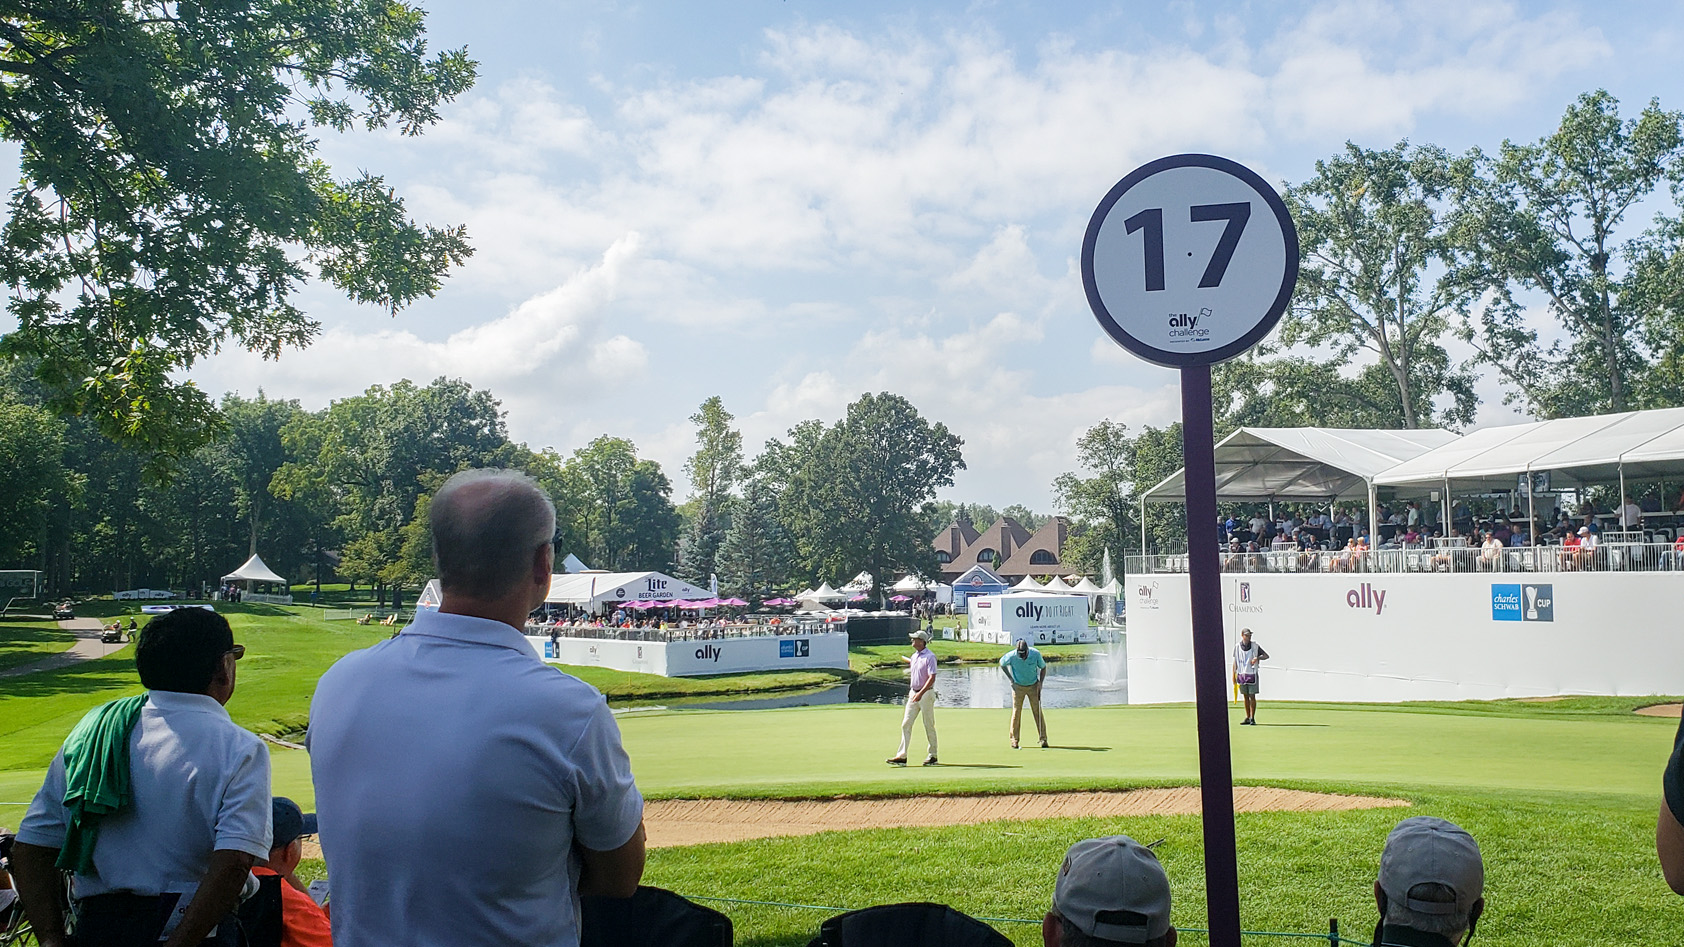 Fans watch golfers from 17th hole at Ally Challenge in Grand Blanc, MI